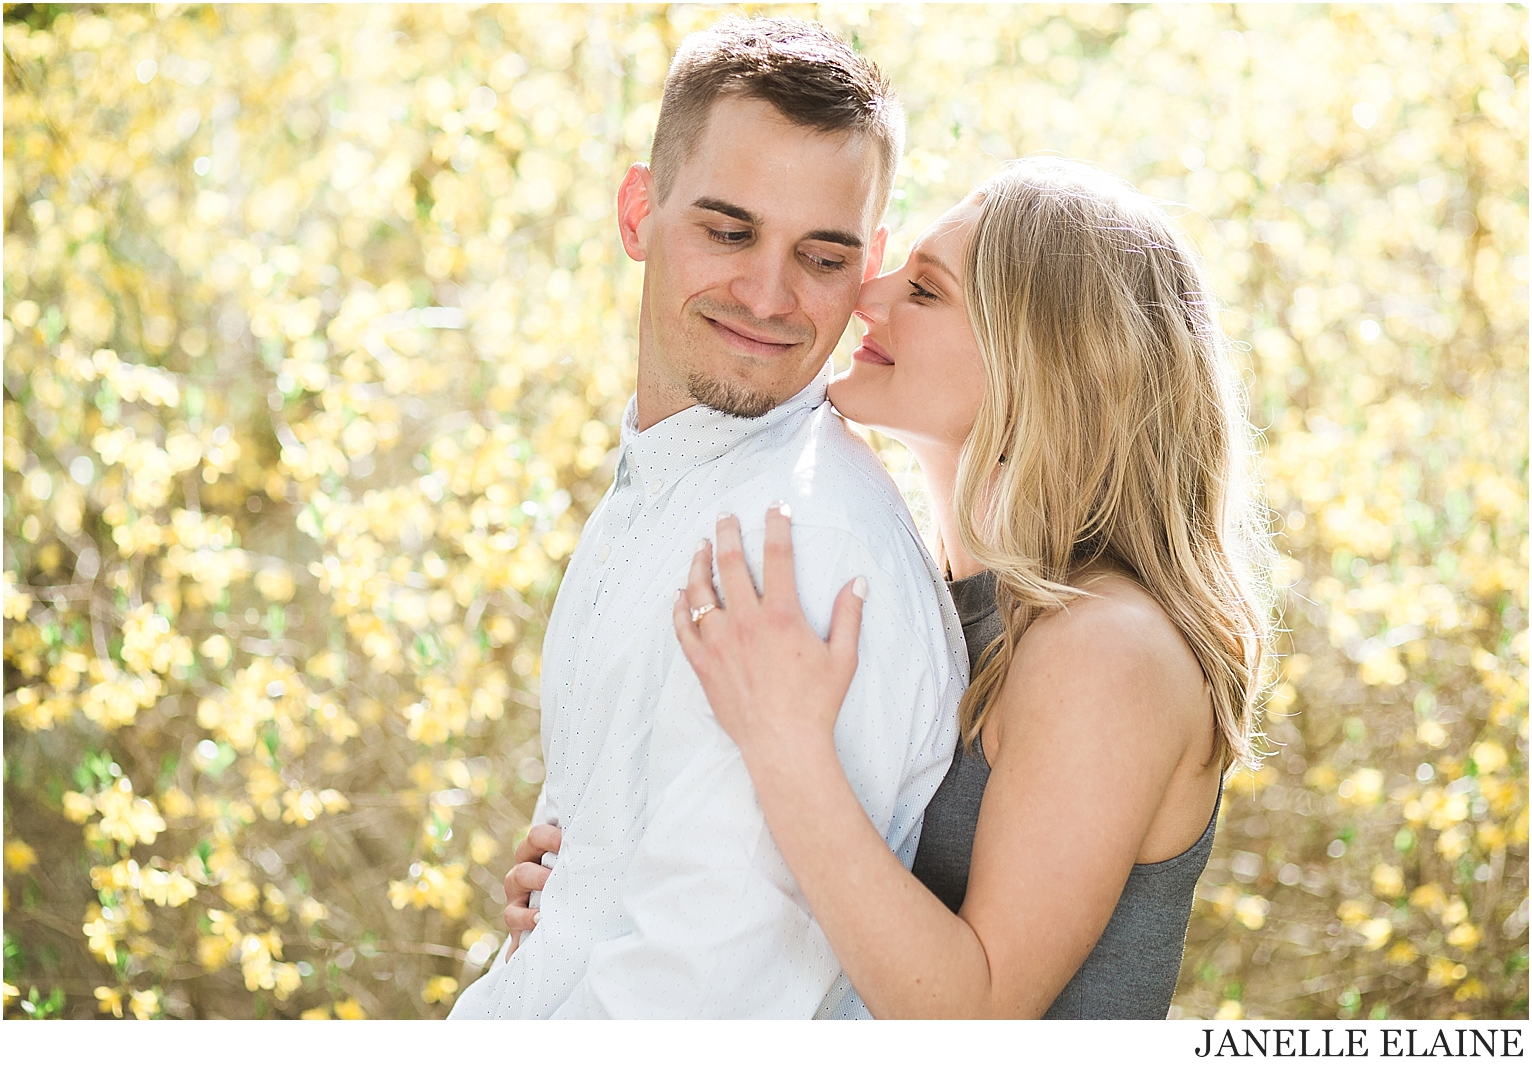 tricia and nate engagement photos-janelle elaine photography-86.jpg